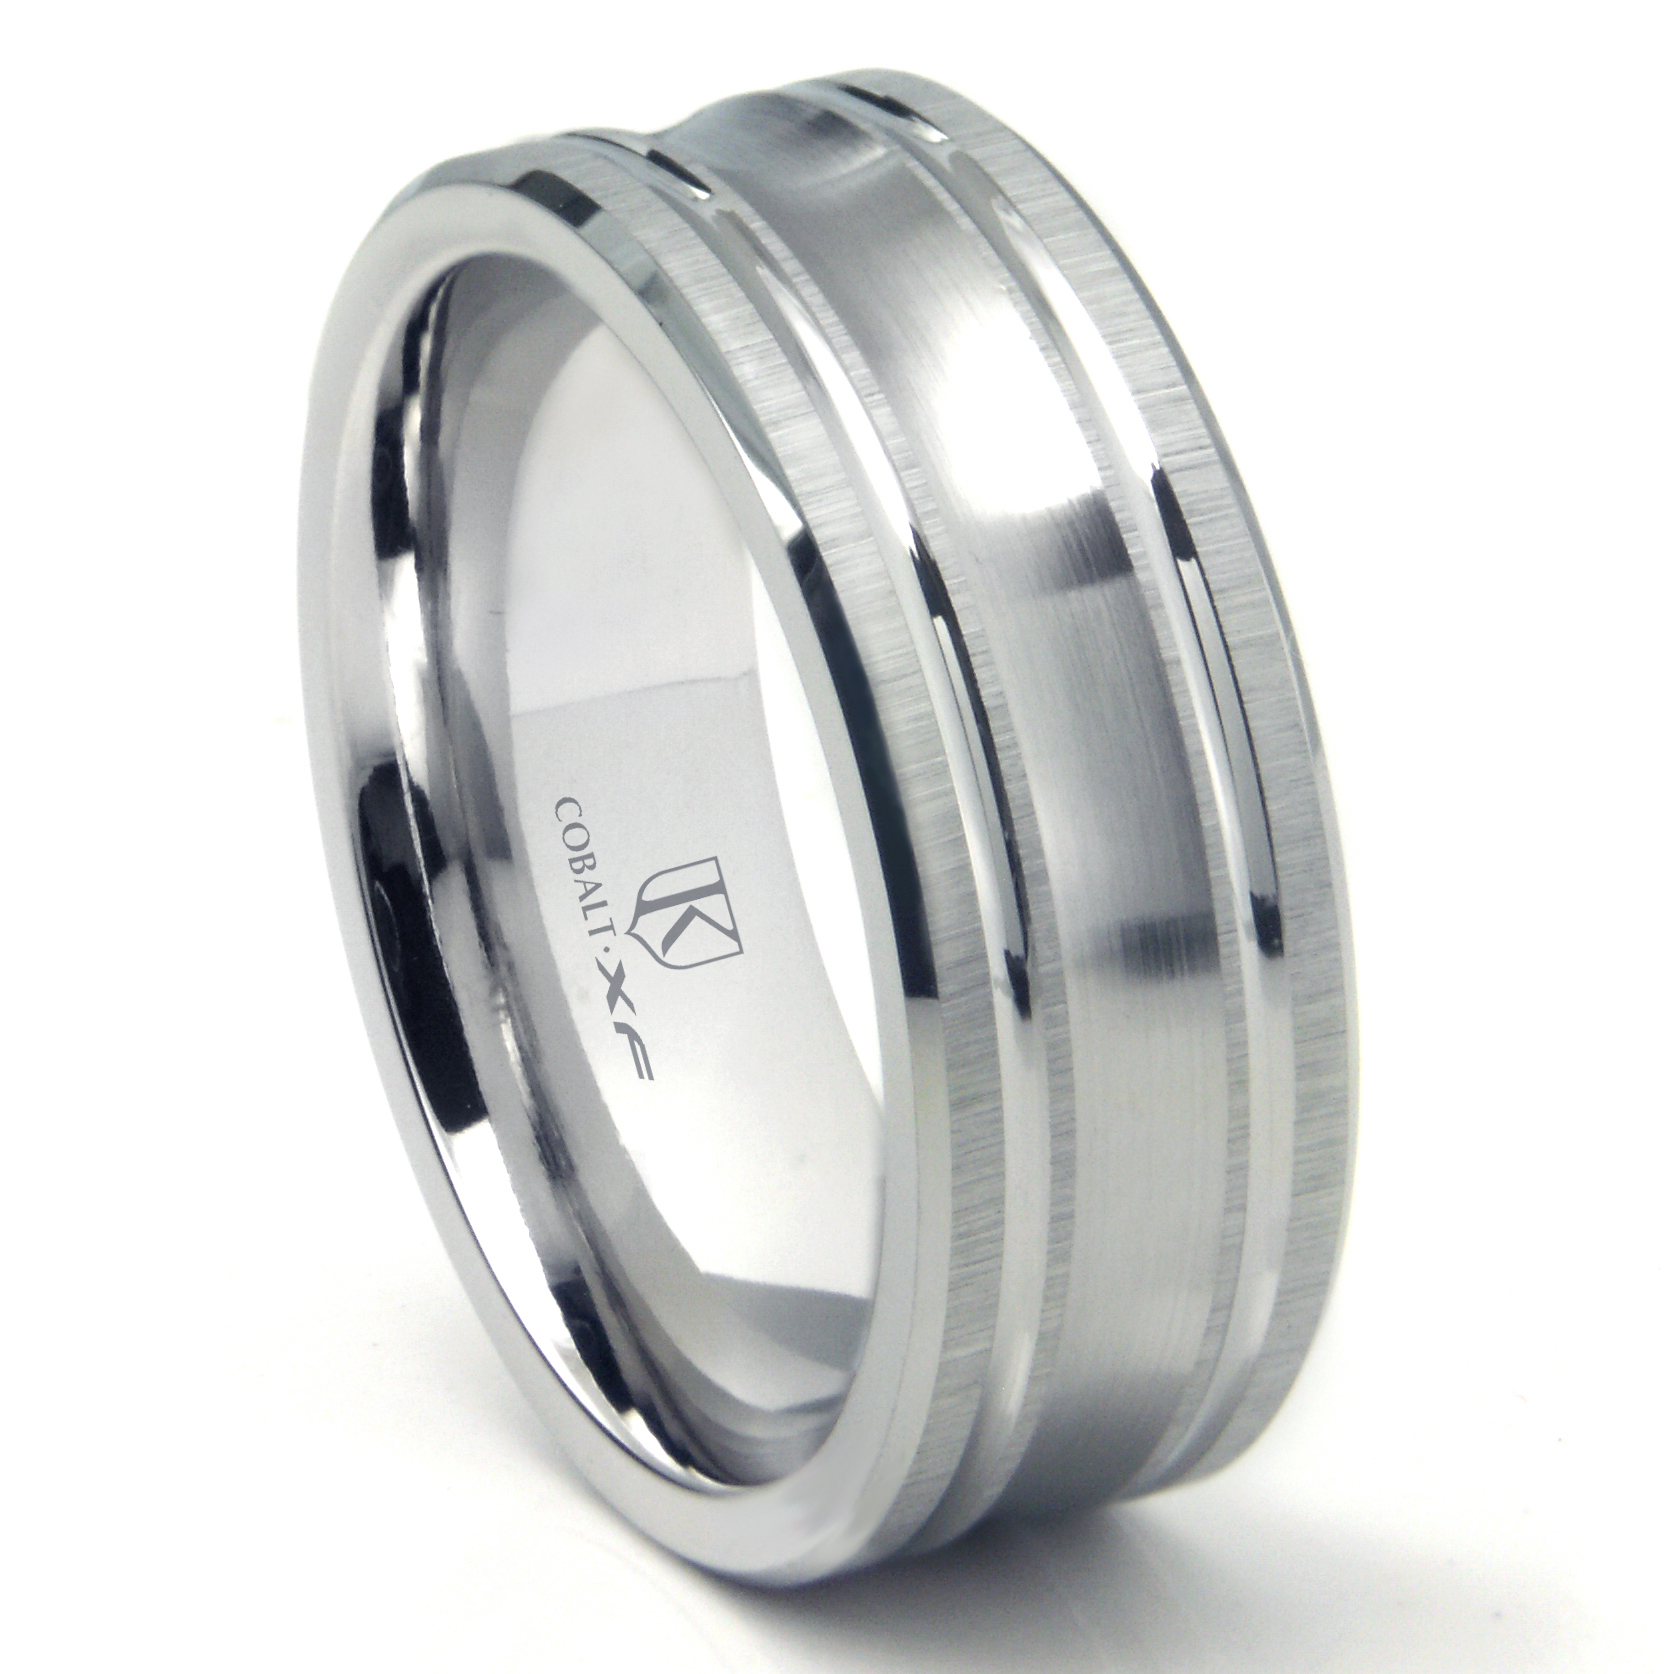 number h rings occasion l tungsten product webstore samuel s wedding men grooms category recipient jewellery ring